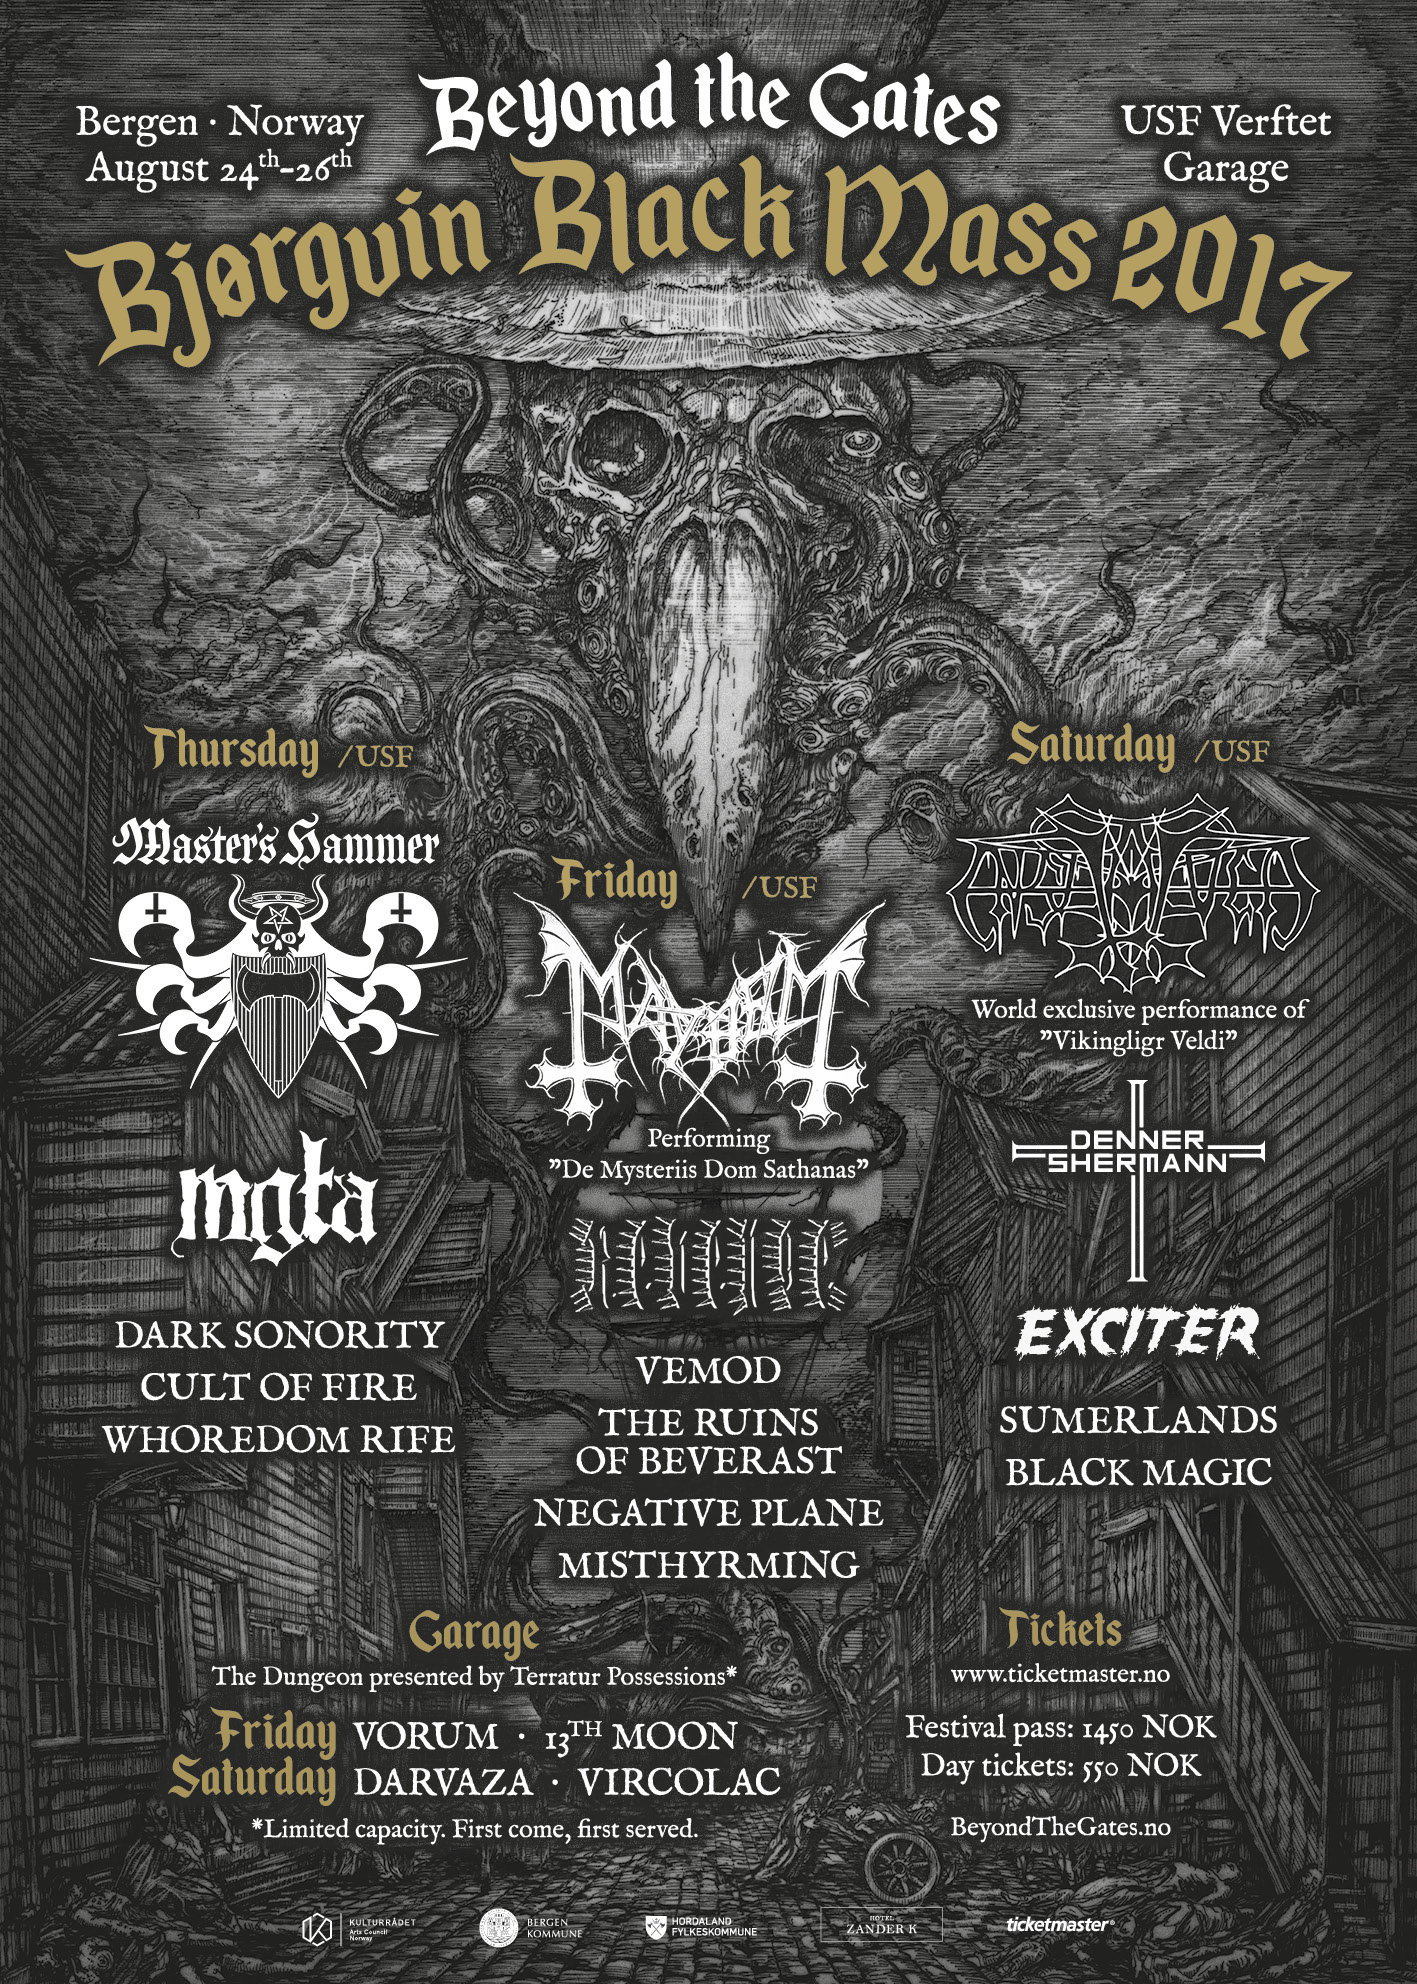 Beyond the Gates 2017